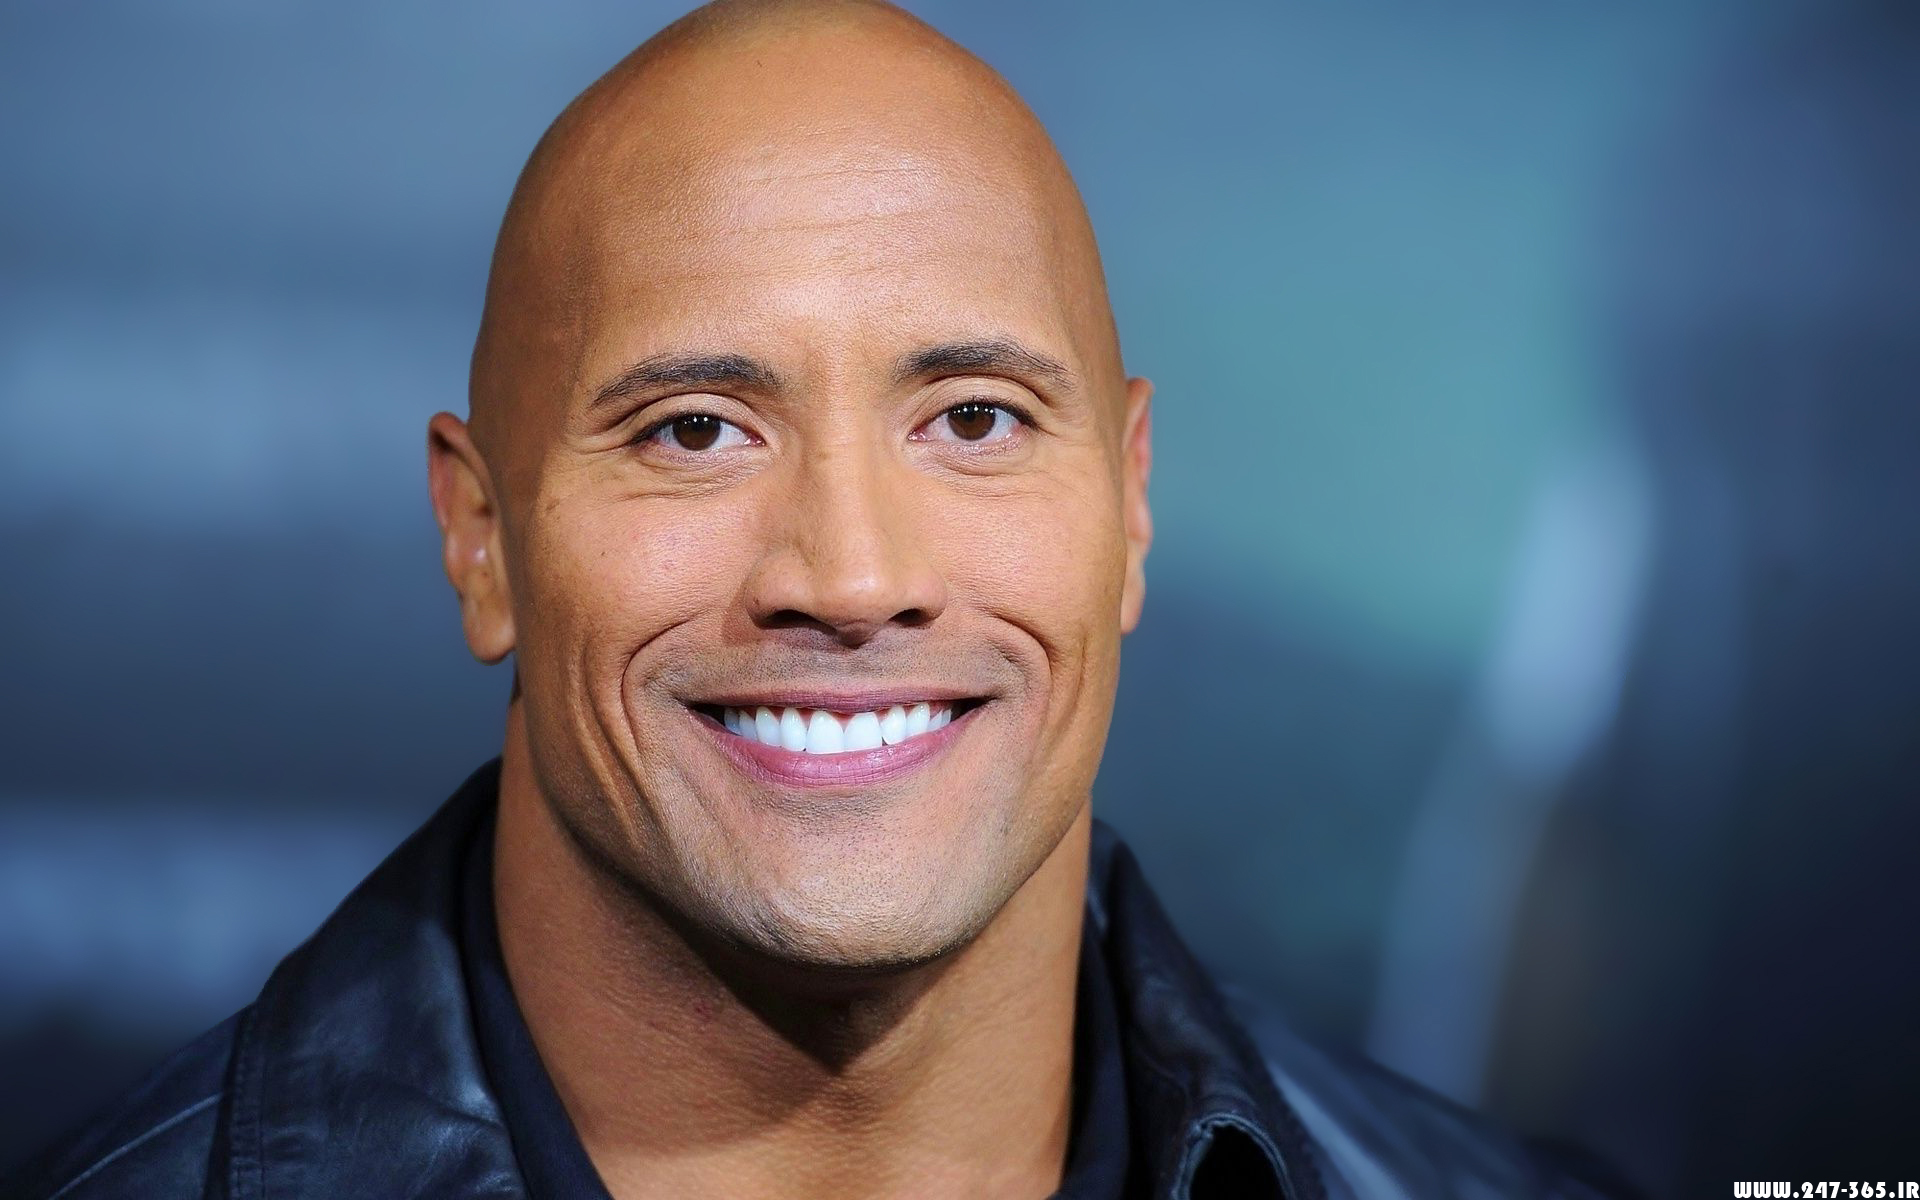 http://dl.247-365.ir/pic/celebrity/dwayne_johnson_4/Dwayne_Johnson_4_01.jpg